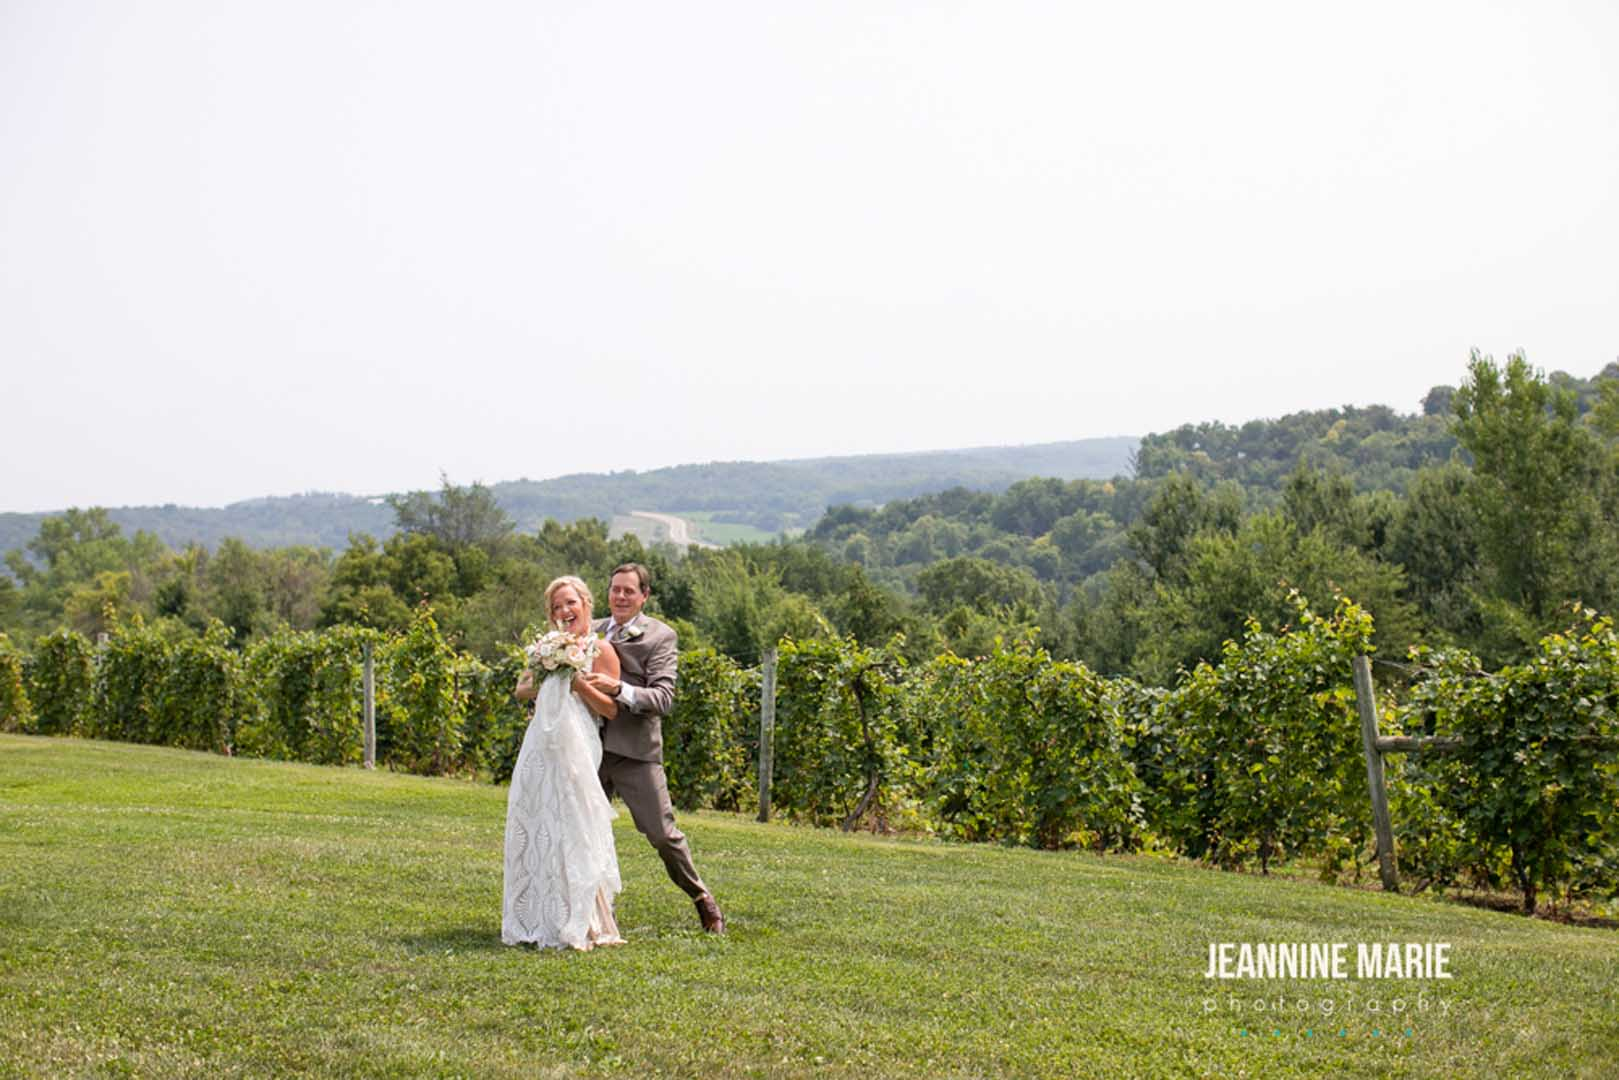 Wedding day overlooking the trees in Sogn valley in southern Minnesota